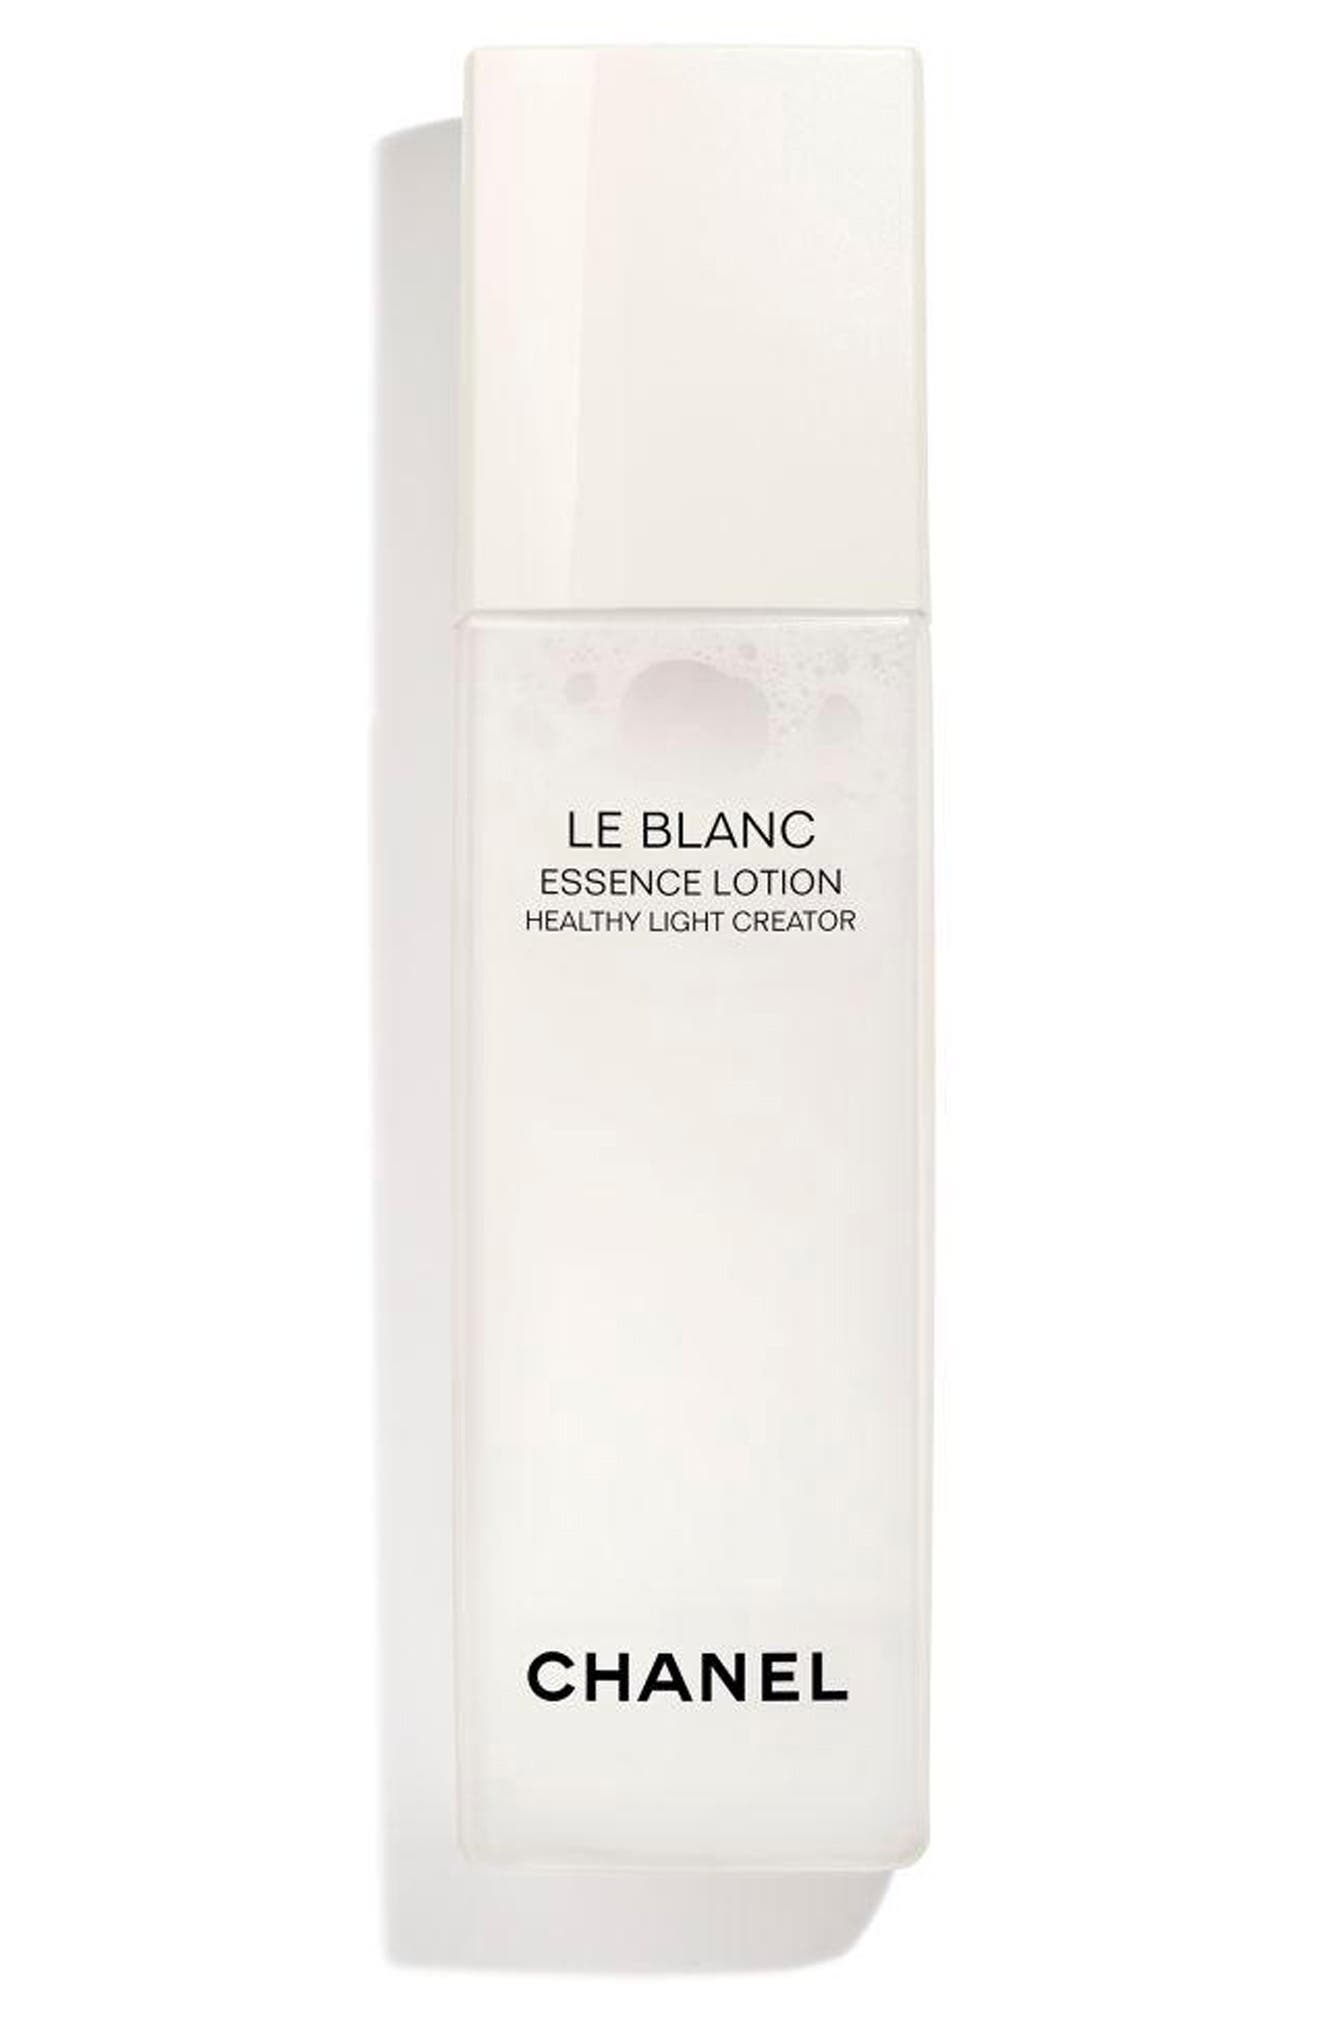 CHANEL LE BLANC ESSENCE LOTION  Healthy Light Creator   Nordstrom